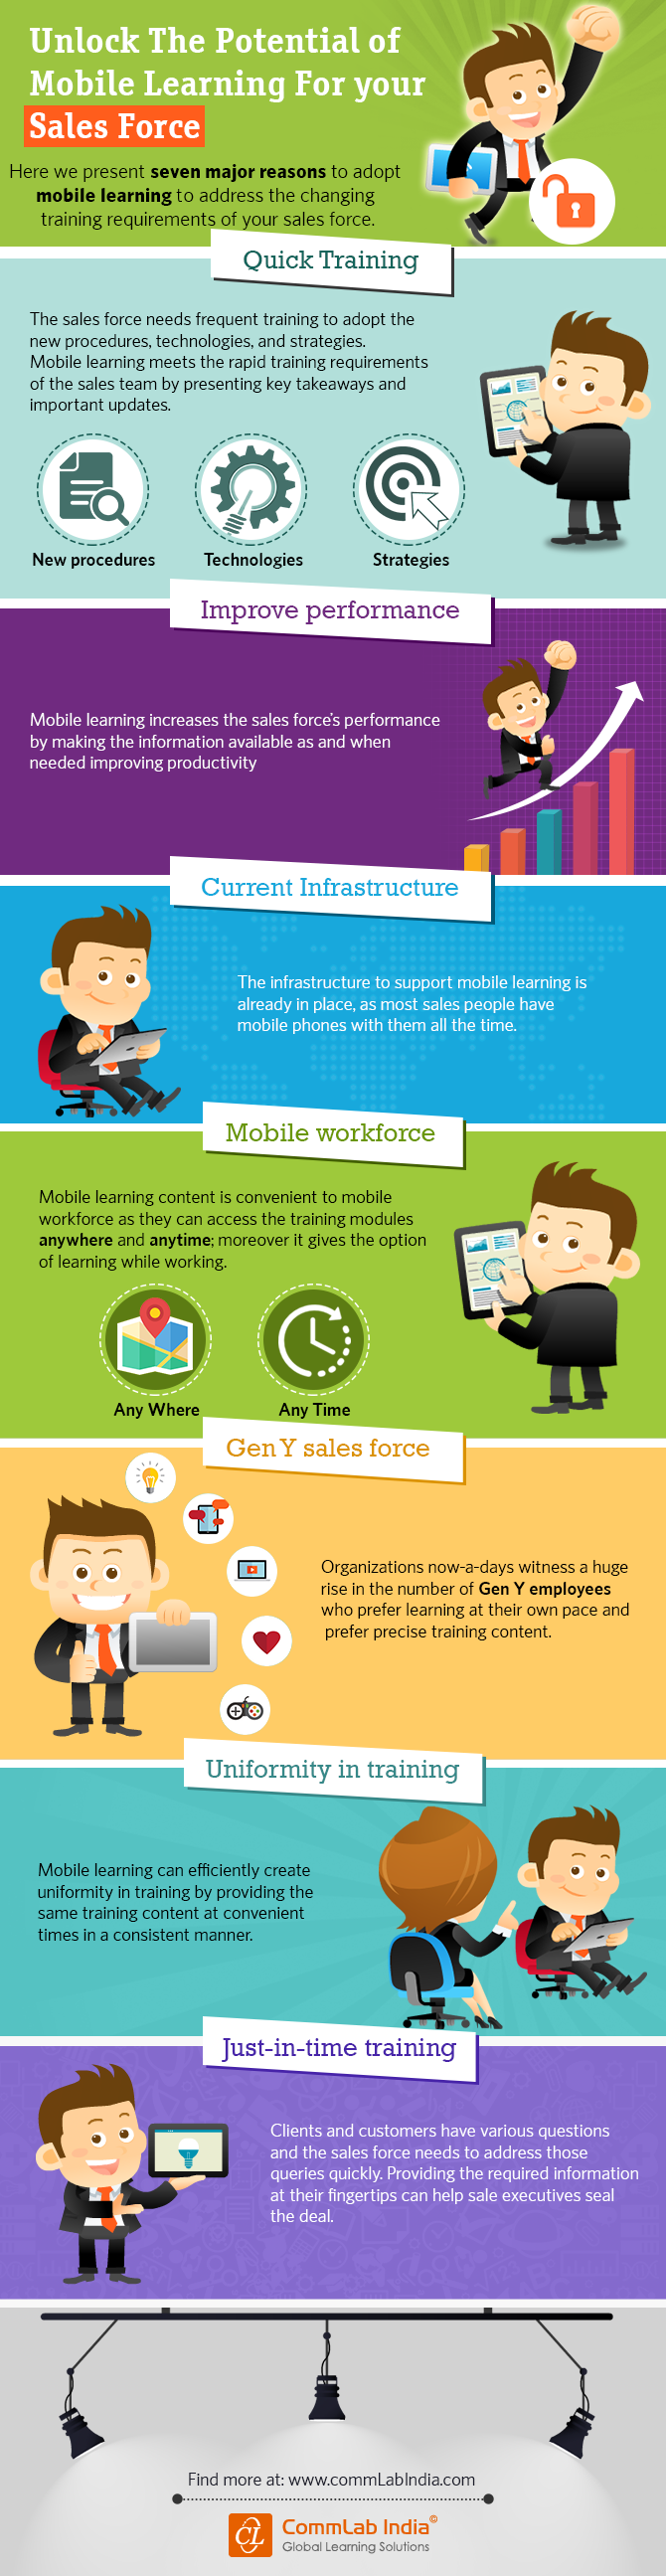 Unlock The Potential of Mobile Learning for Your Sales Force [Infographic]